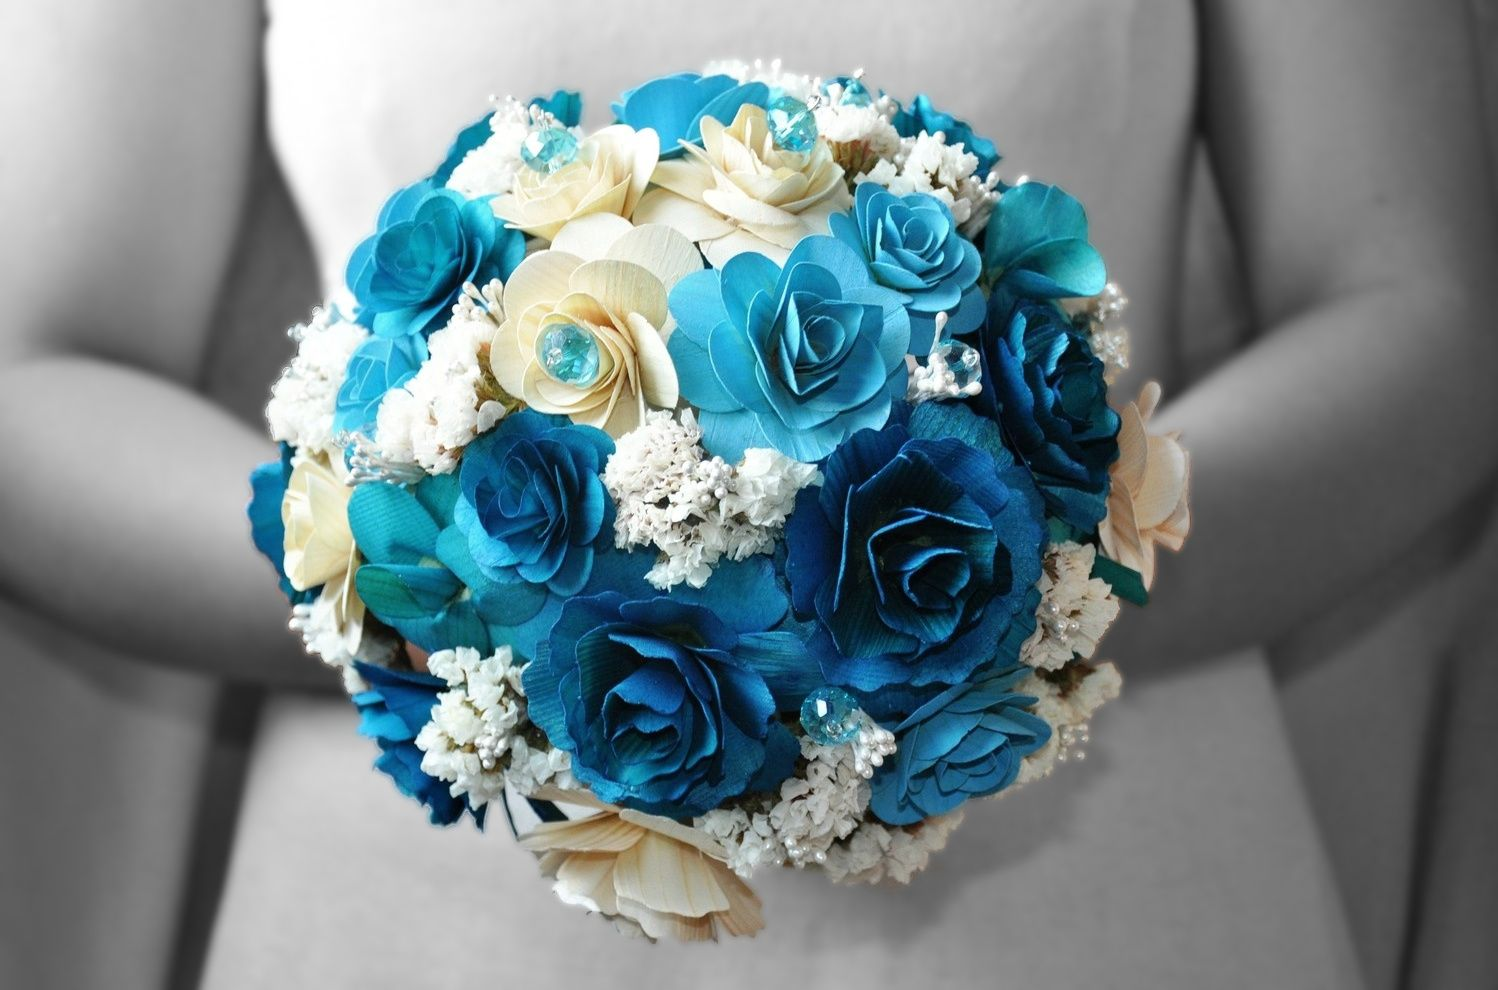 How to paper wedding bouquet blue wedding bouquets made of wood blue wedding bouquets made of wood paper corn husk and fossilized flowers izmirmasajfo